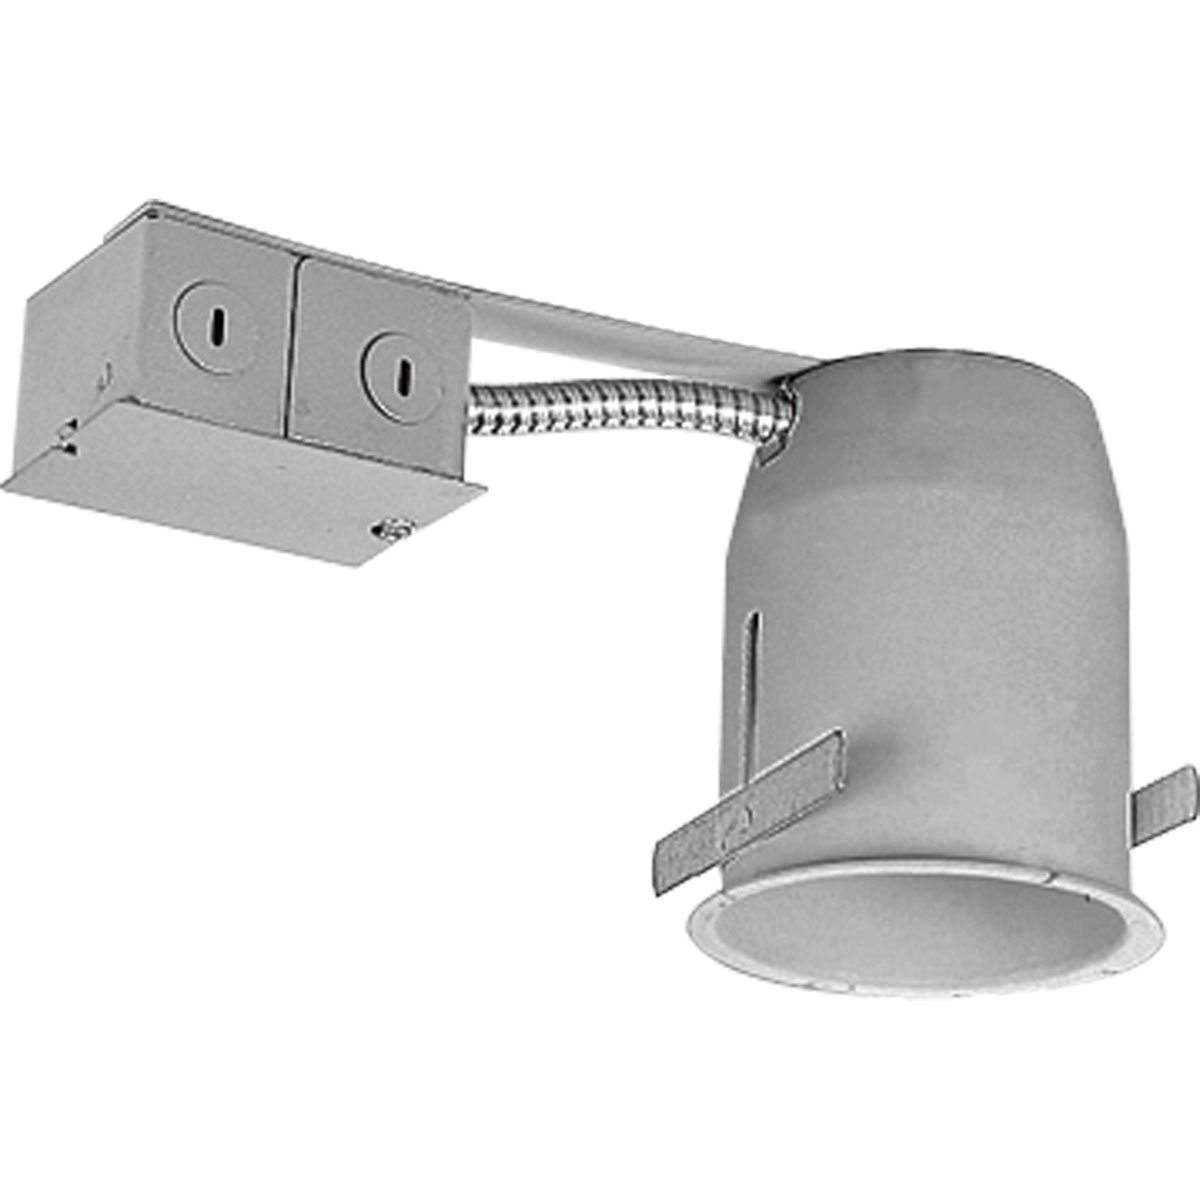 Progress Lighting P832-TG Remodel Recessed Lighting Housing for Use in Existing Ceilings Integral Flange on Housing and Exclusive Locking Bars